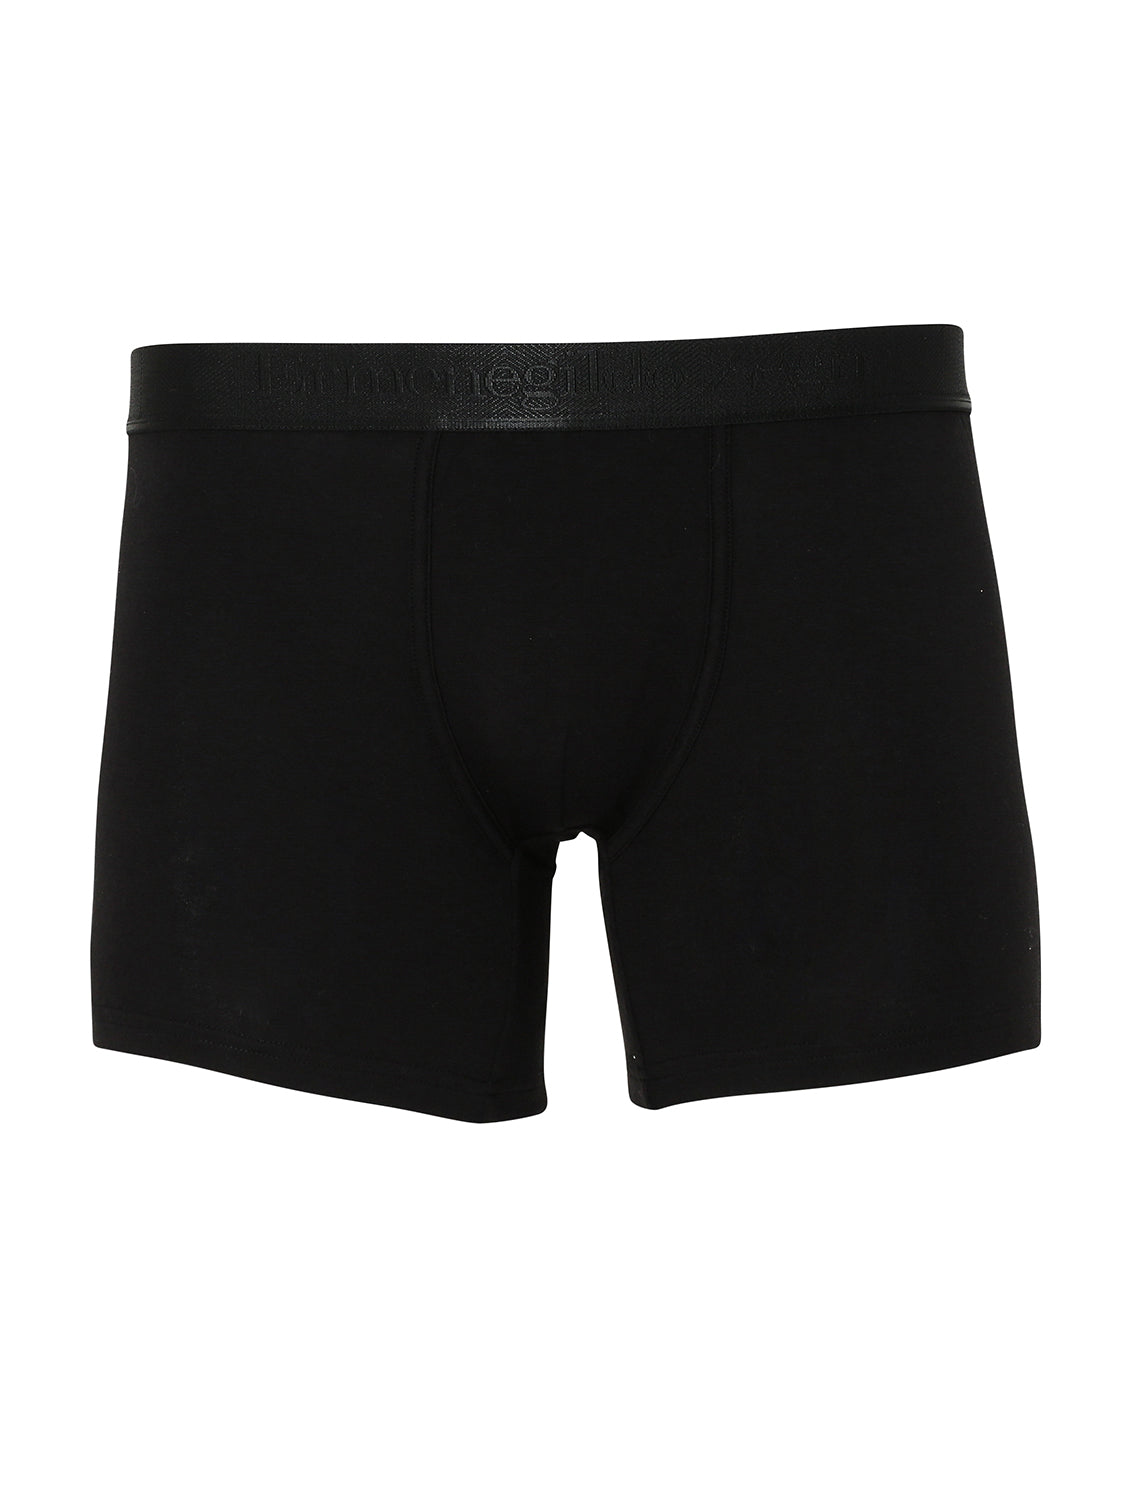 Ermenegildo Zegna Boxers/Twin Set (Black) - Union 22